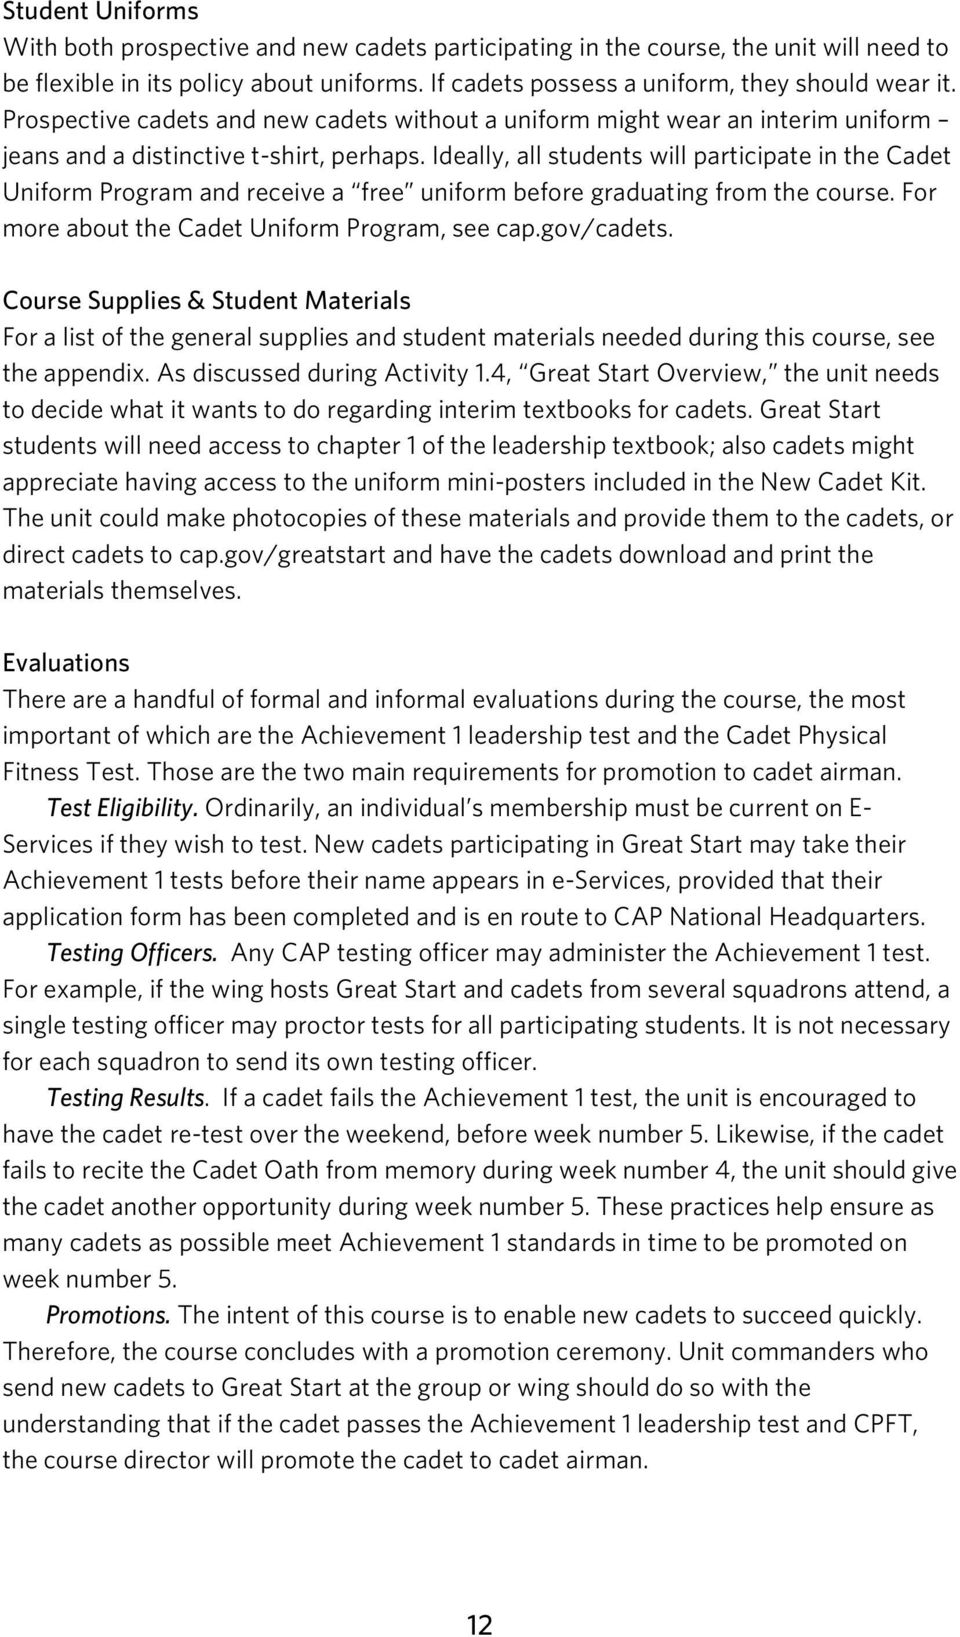 Ideally, all students will participate in the Cadet Uniform Program and receive a free uniform before graduating from the course. For more about the Cadet Uniform Program, see cap.gov/cadets.